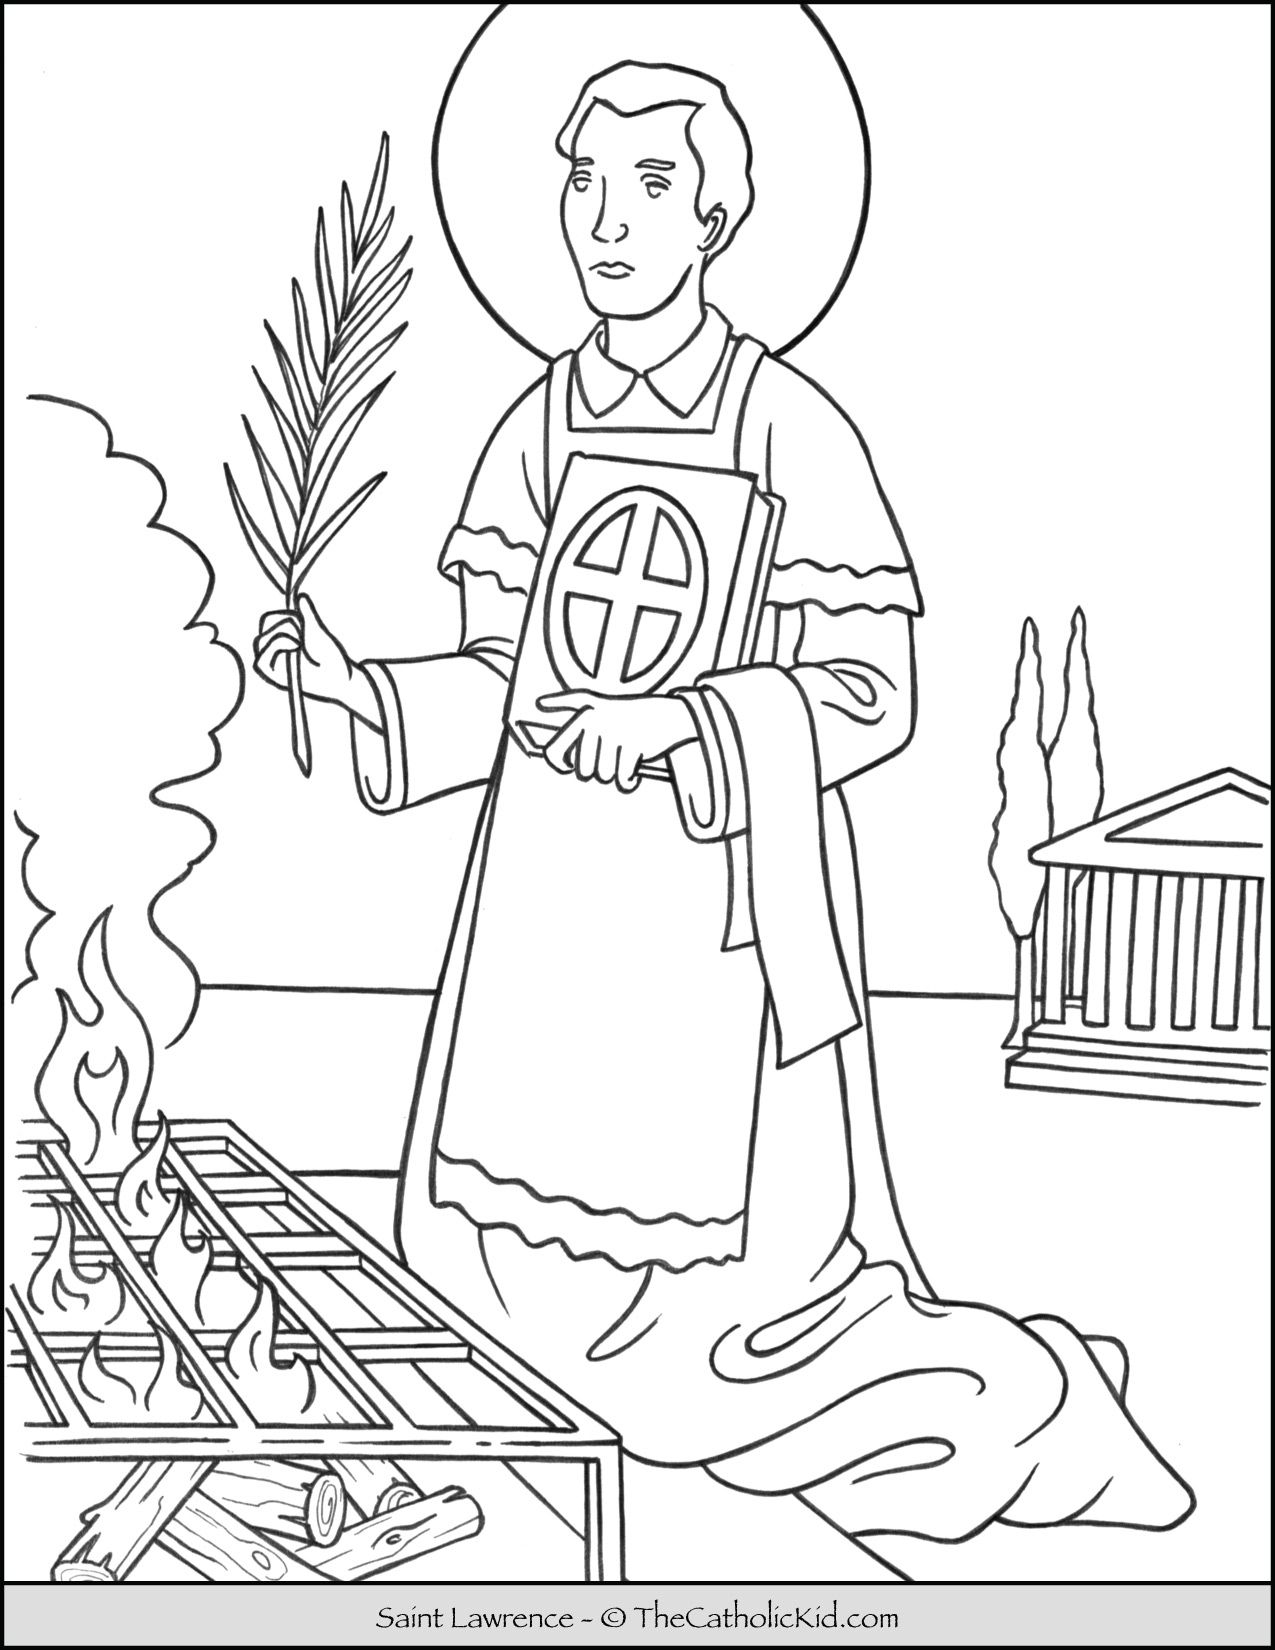 Saint Lawrence Coloring Page Thecatholickid Com Coloring Pages Catholic Coloring Cat Coloring Page